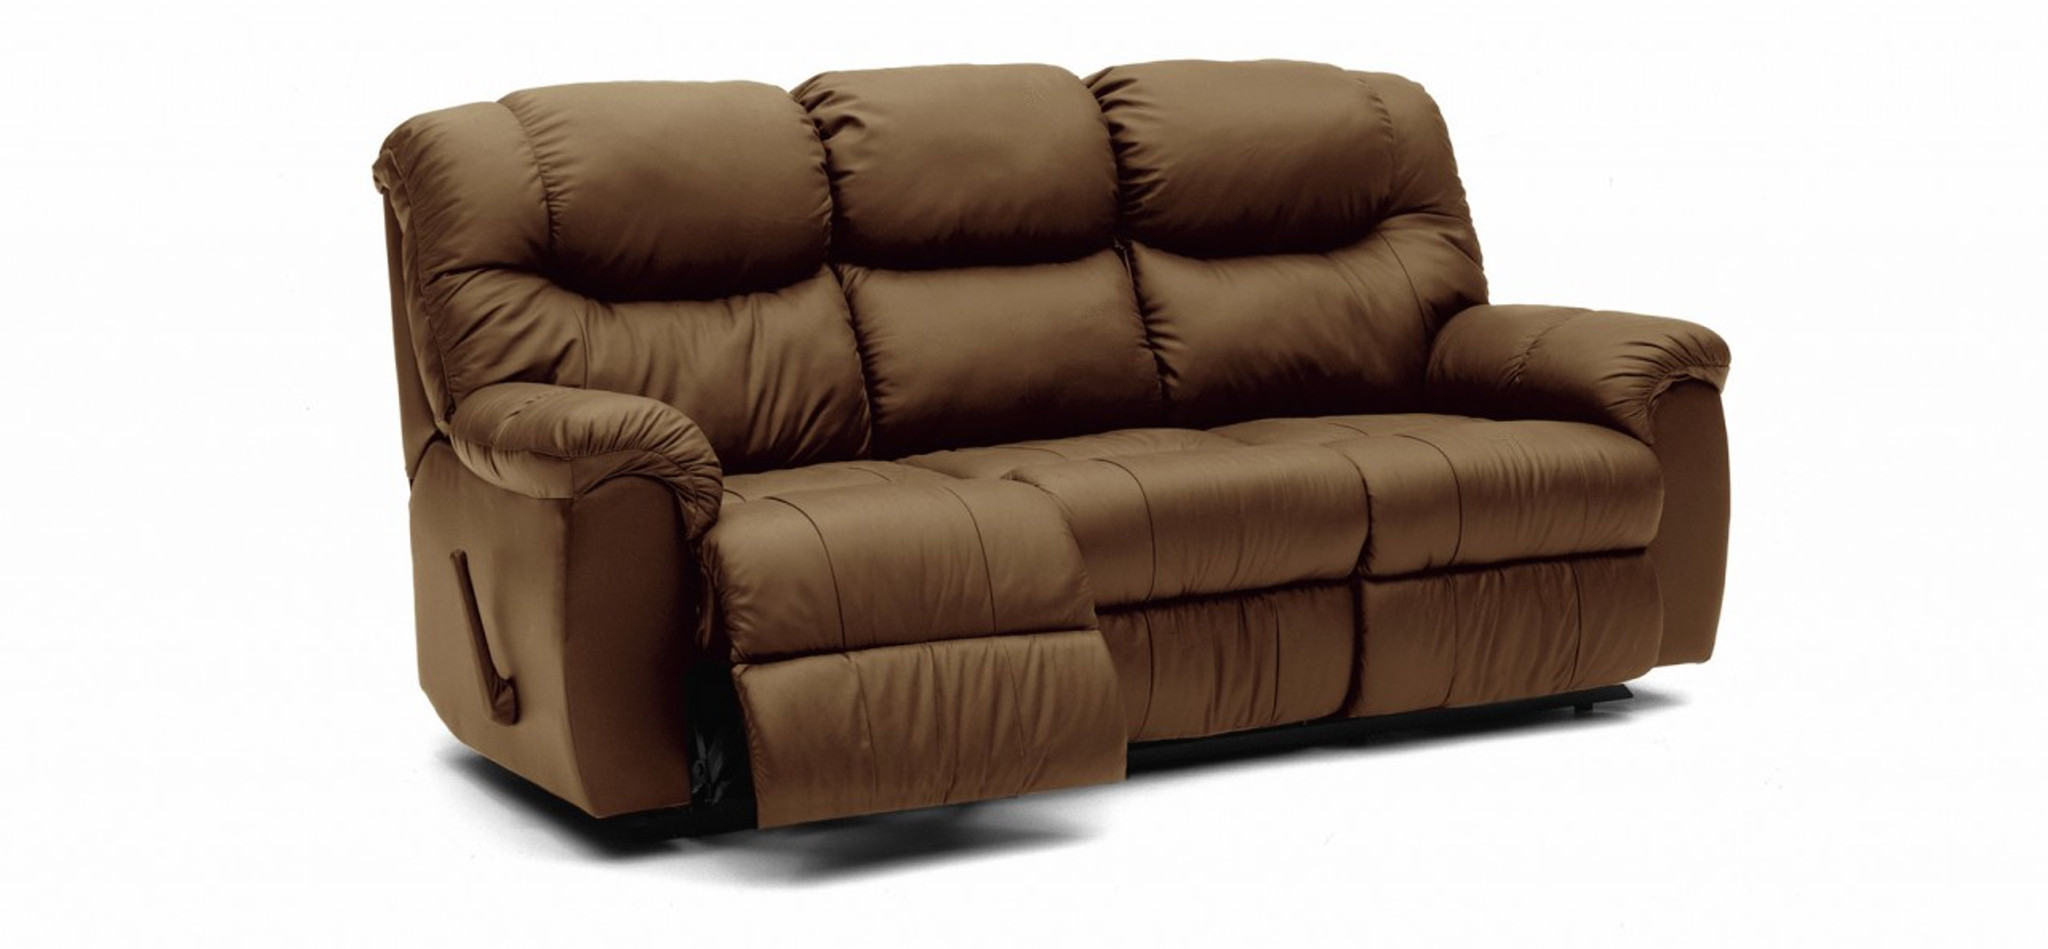 Palliser Regent Leather Sofa Recliner Model 41094 | Palliser ...